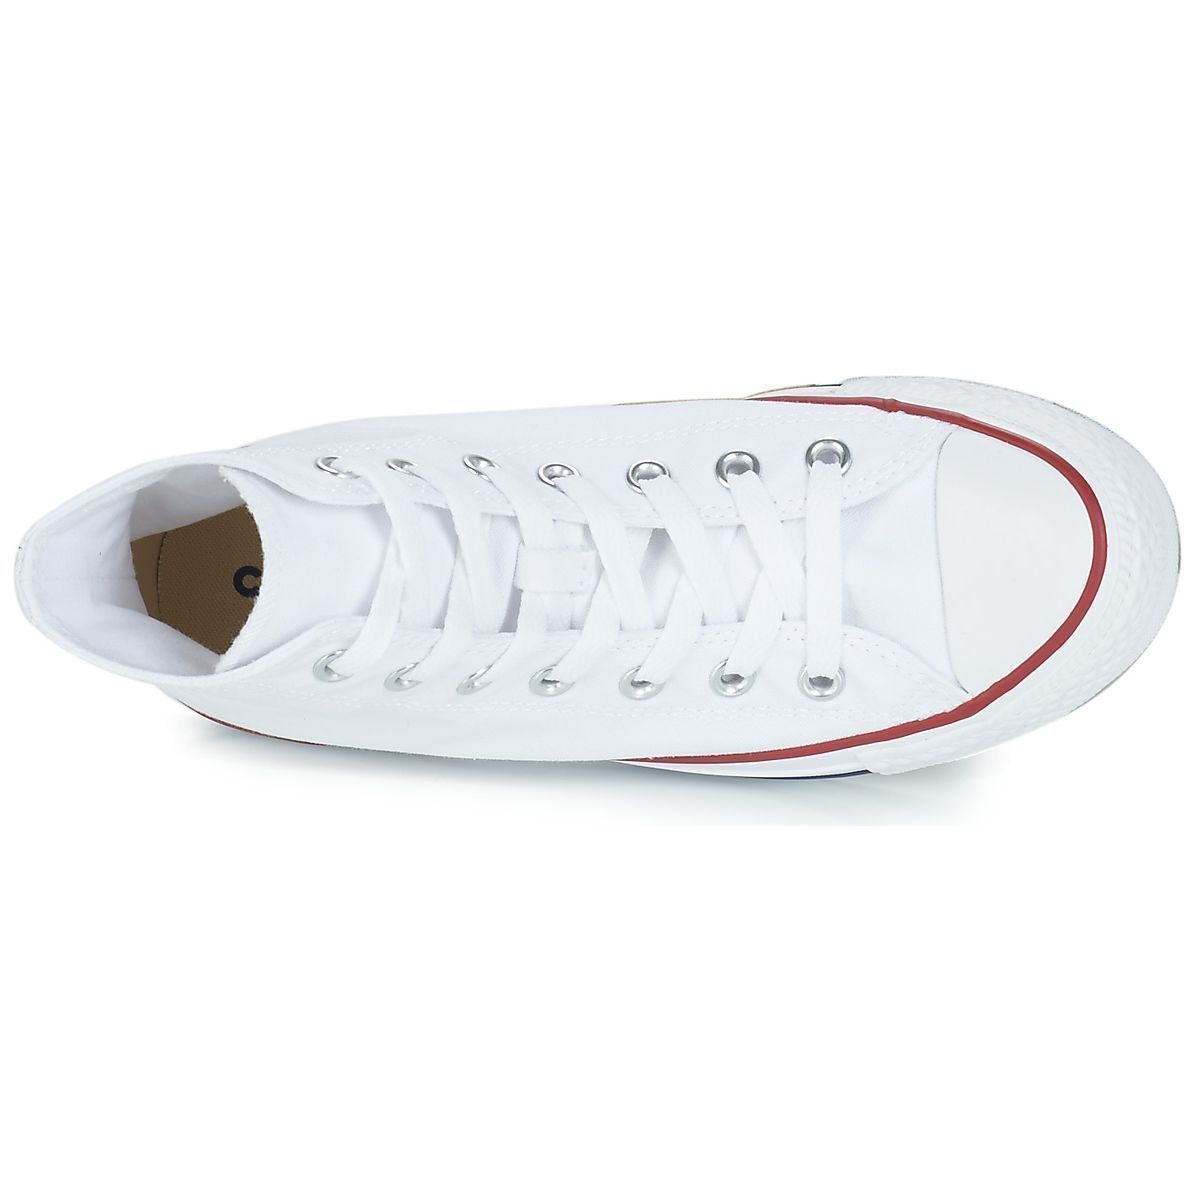 Converse fille ctas all star hi blanc1629802_6